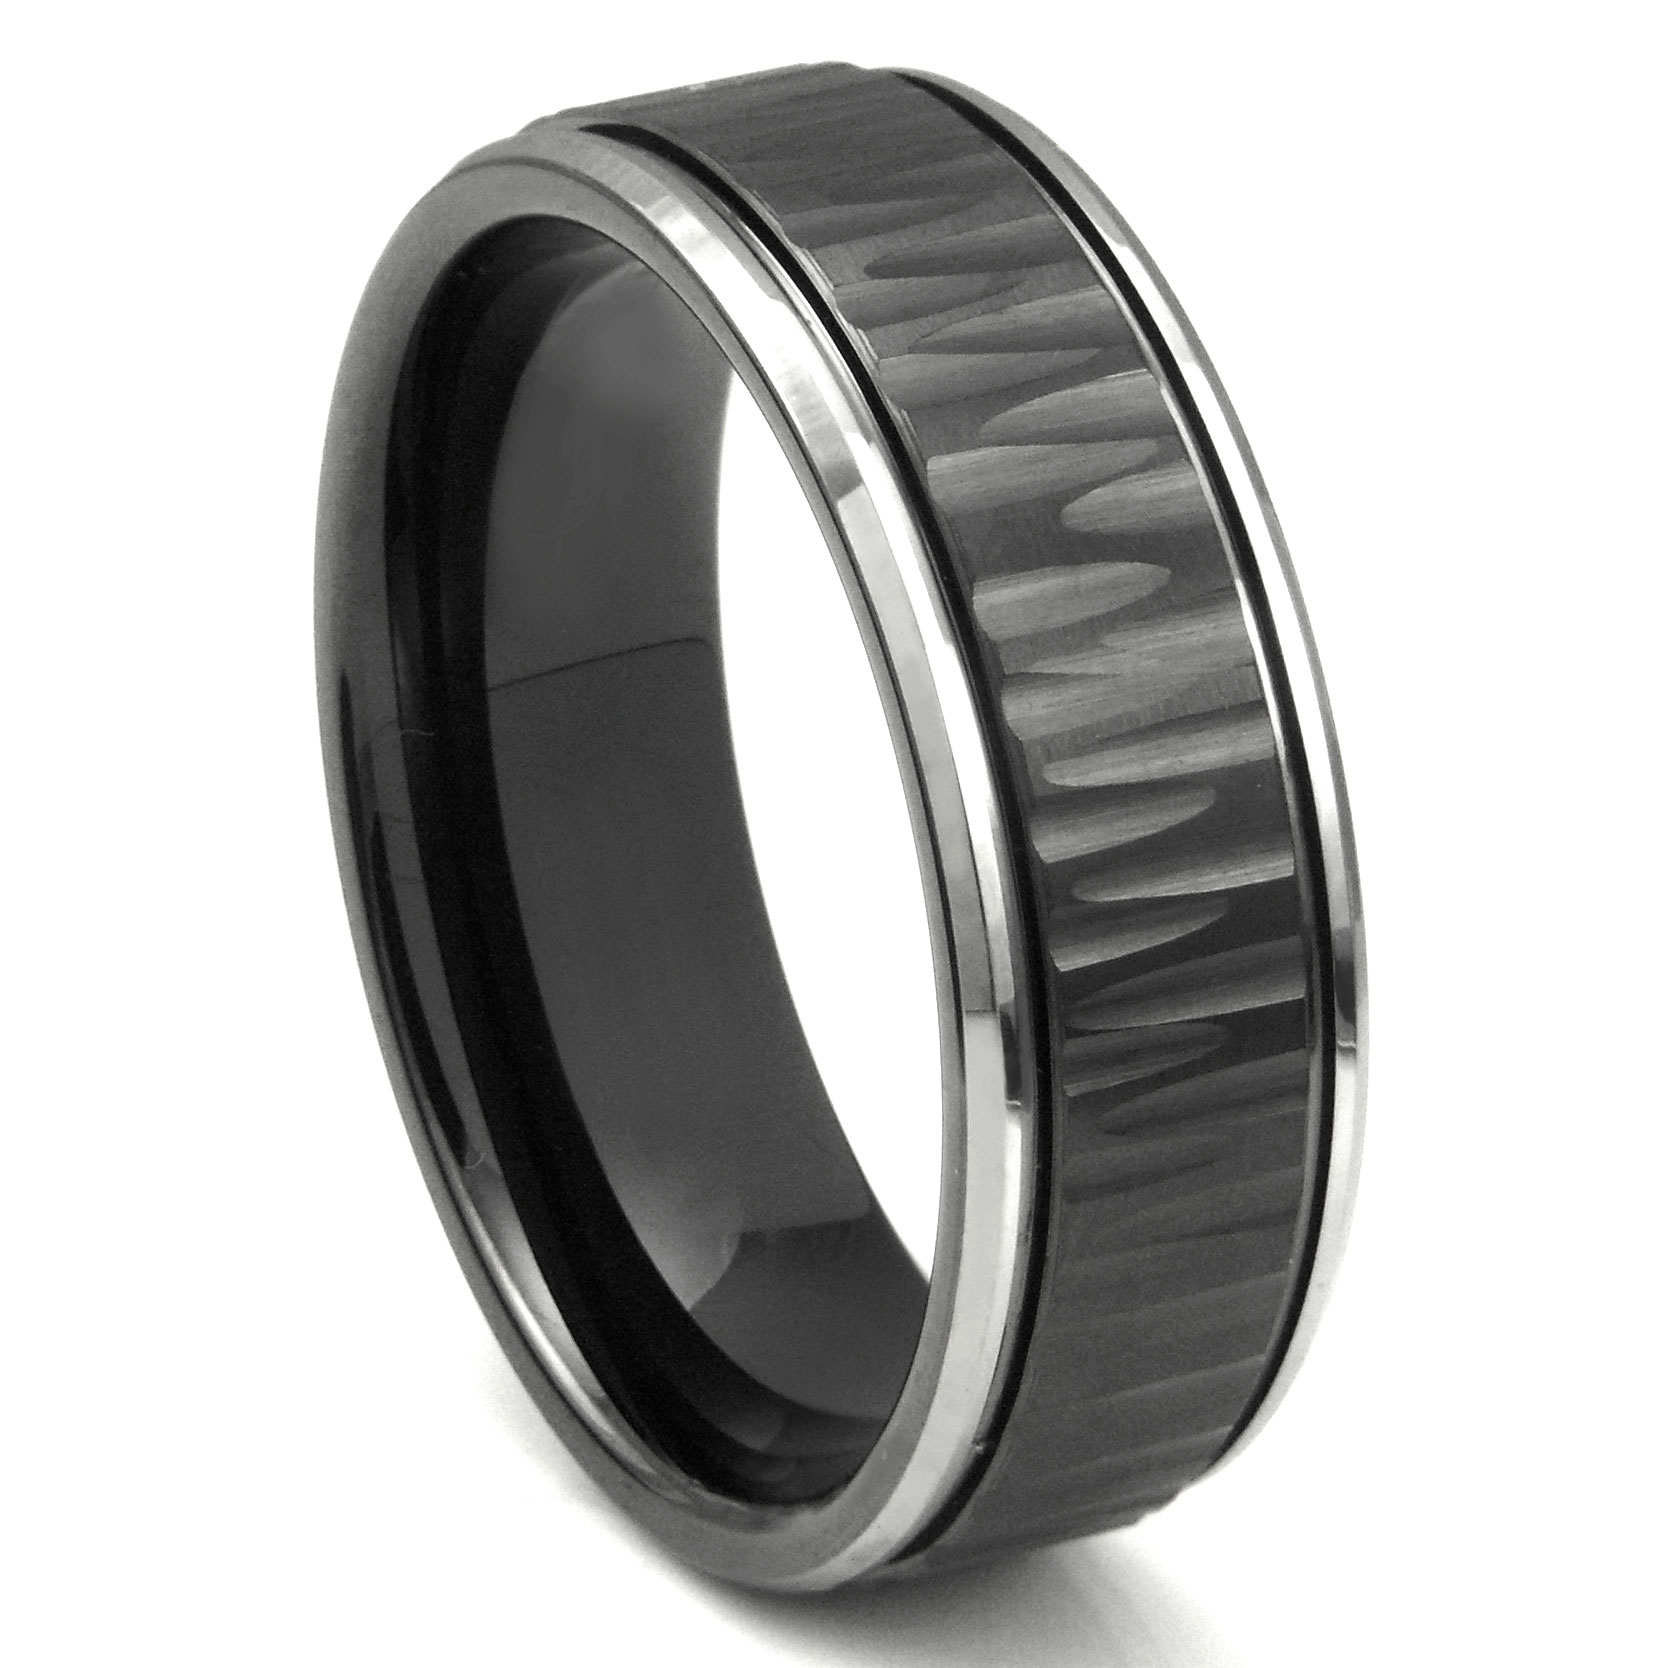 band co tungsten uk amazon black carbide jewellery wedding bands silvering mens queenwish celtic carbon dragon dp blue ring fibre